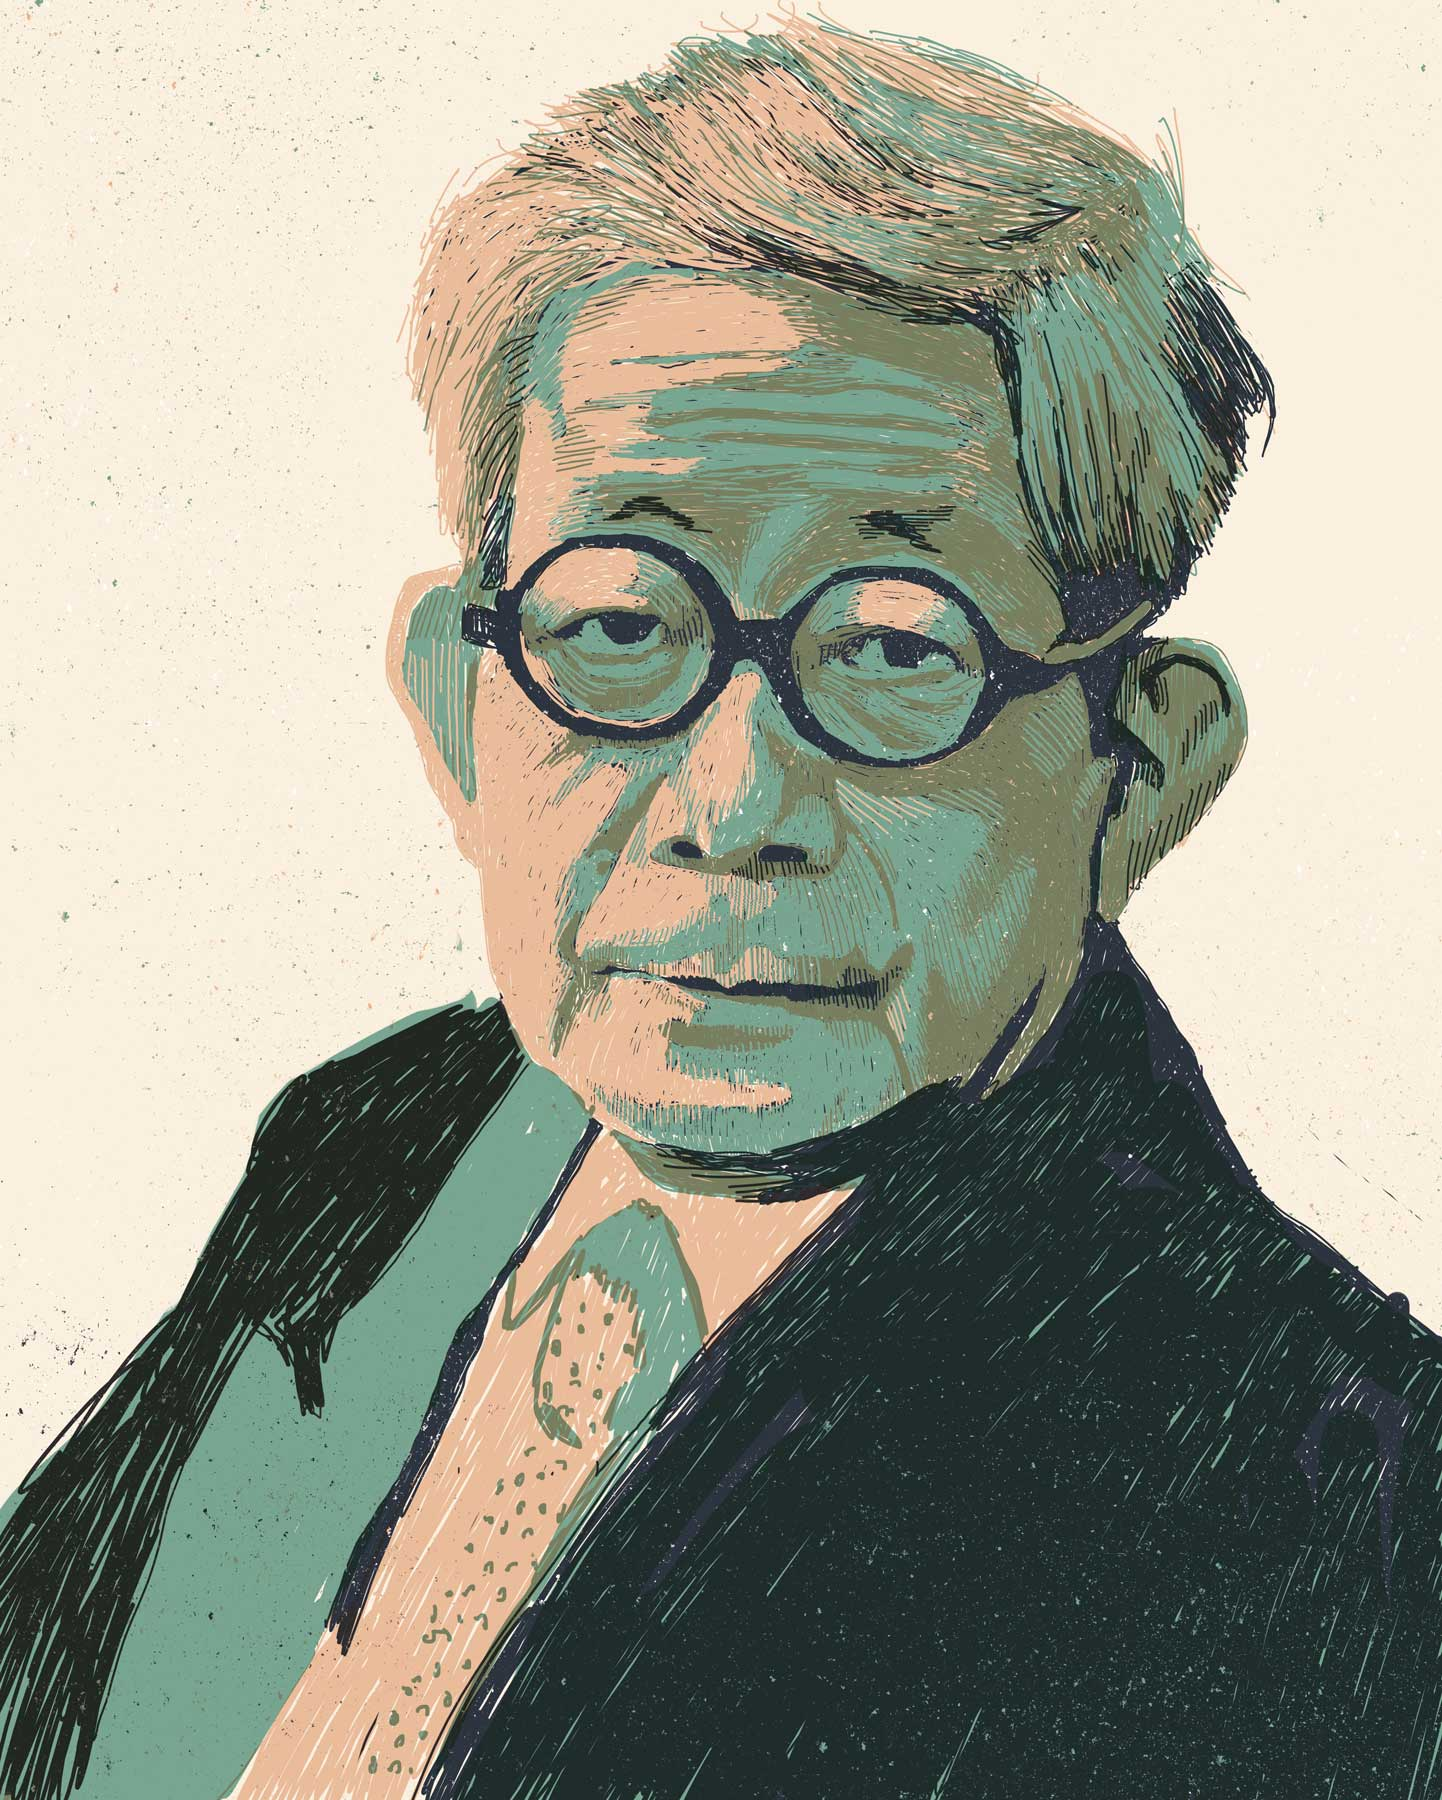 Portrait of nobelprize winning Japanese writer Kenzaburō Ōe. His novels, short stories and essays deal with political, social and philosophical issues, including nuclear weapons, nuclear power, social non-conformism, and existentialism. Digital Illustration